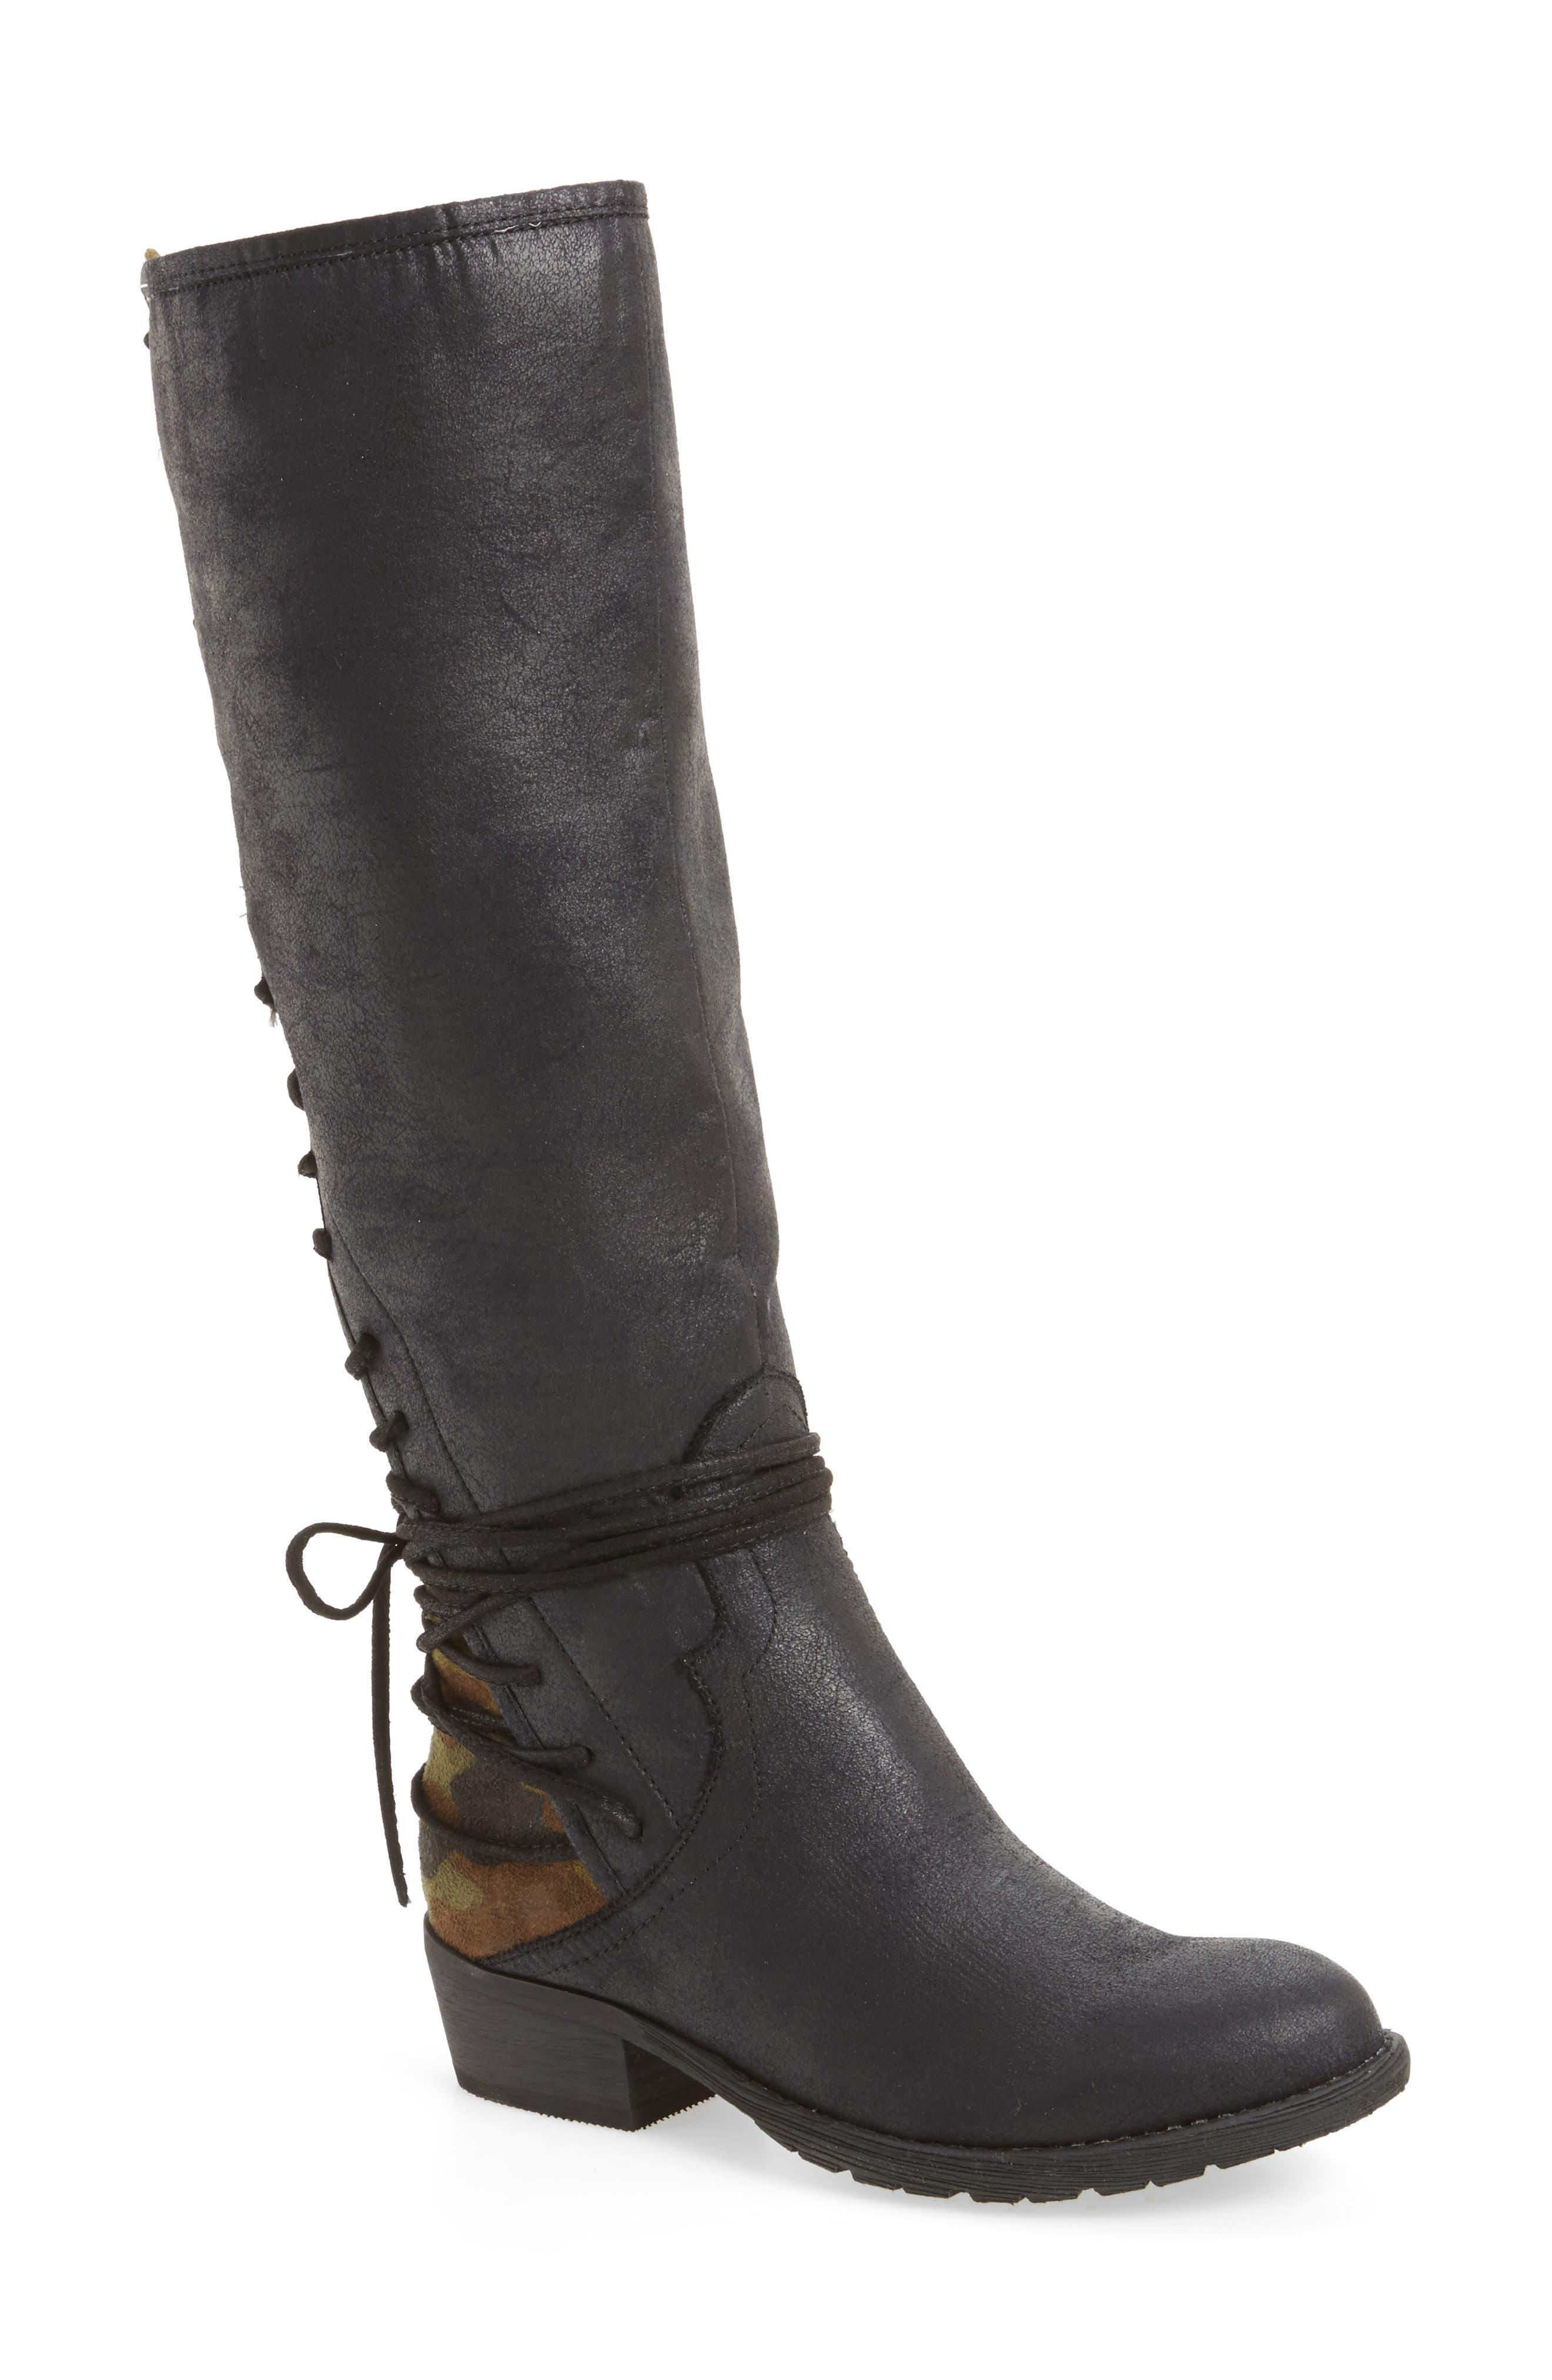 Main Image - Very Volatile Marcel Corseted Knee High Boot (Women)